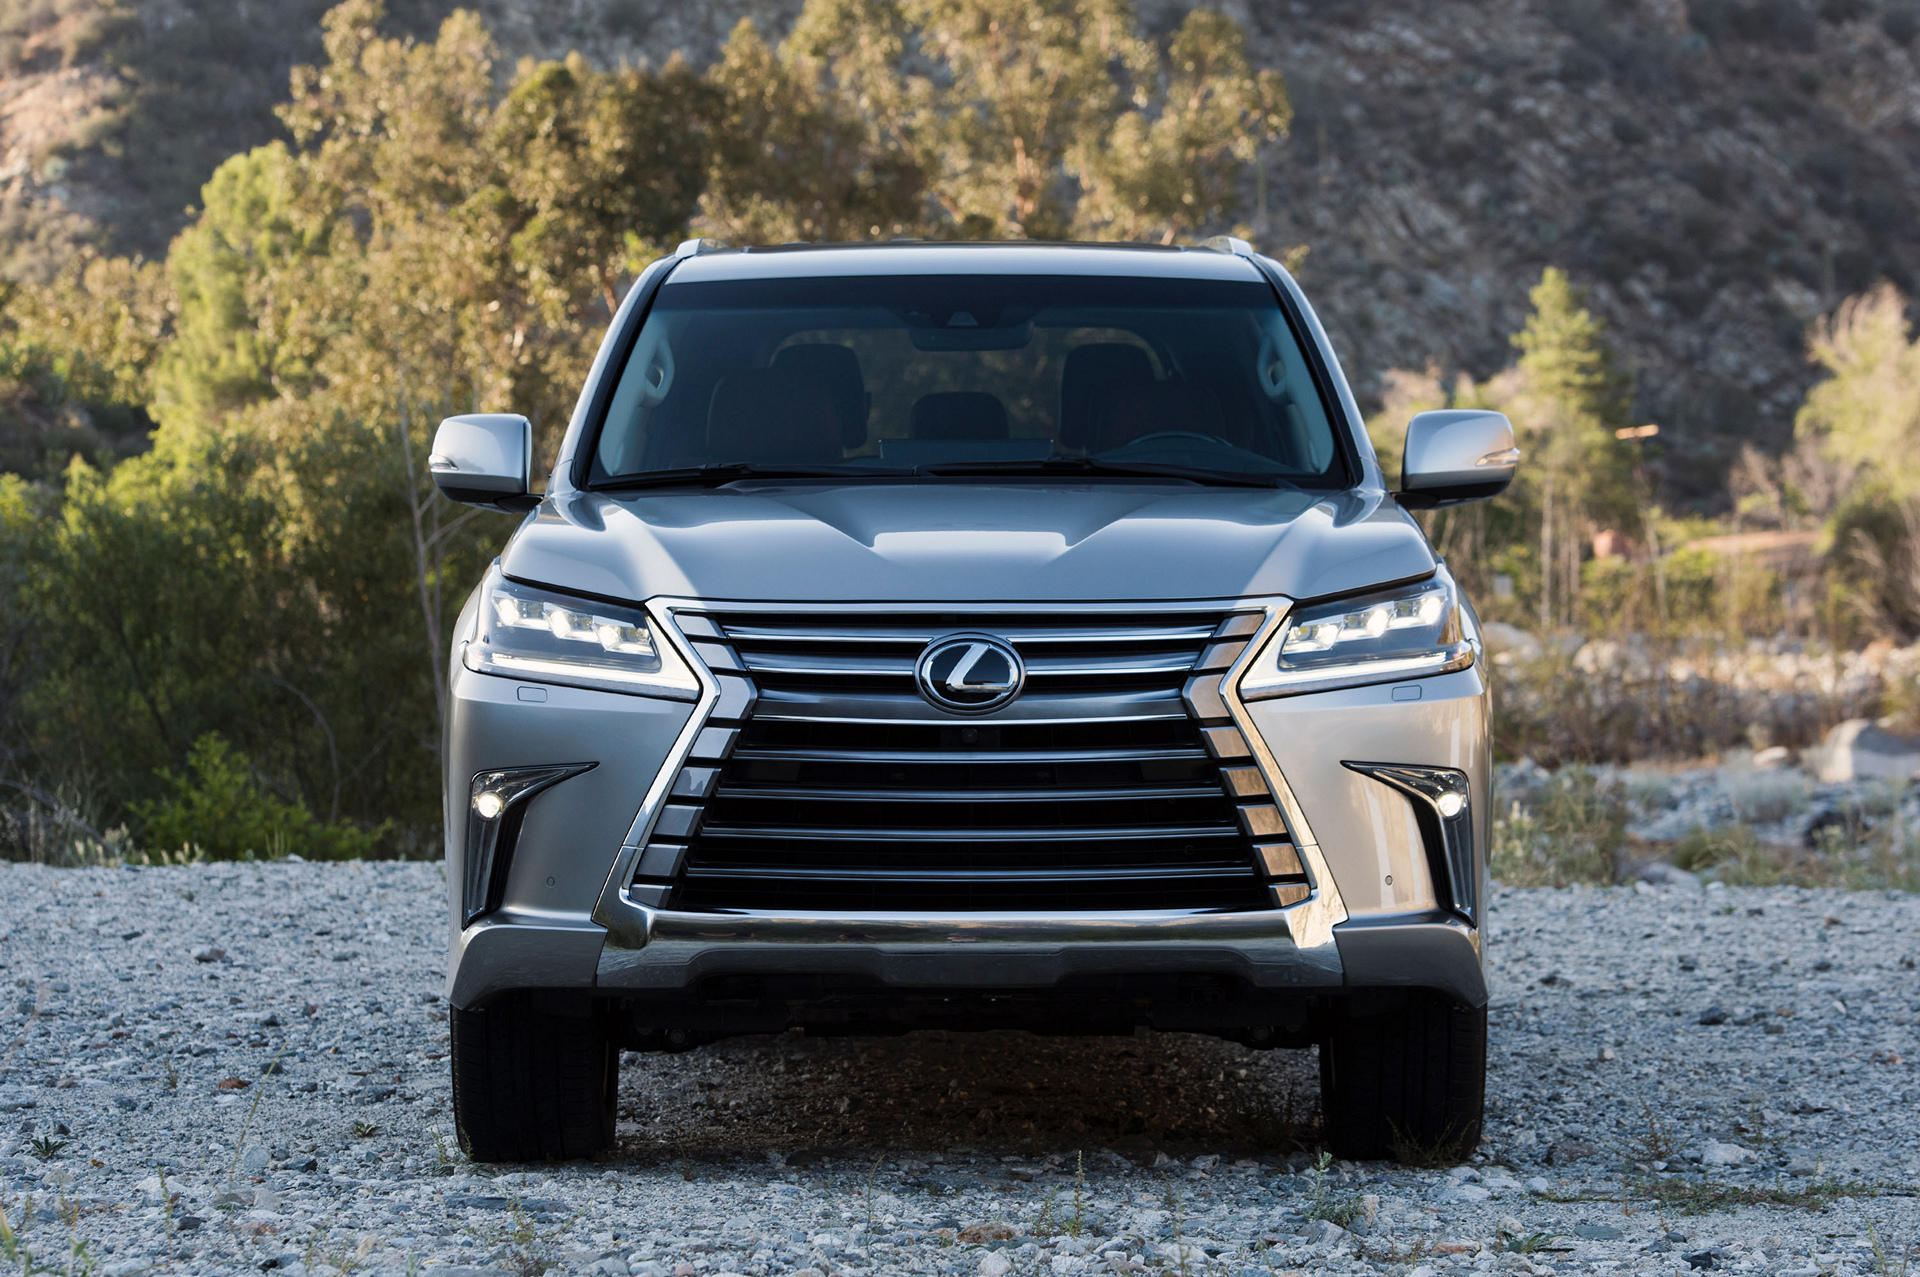 2016 lexus lx 570 review carrrs auto portal. Black Bedroom Furniture Sets. Home Design Ideas